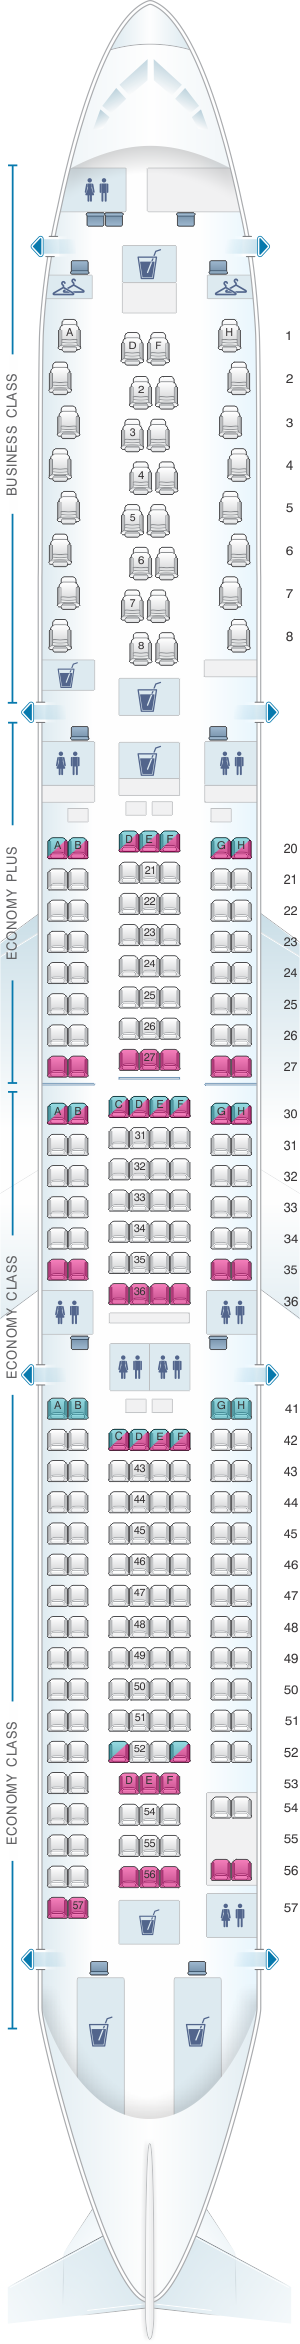 Seat map for Scandinavian Airlines (SAS) Airbus A330 300